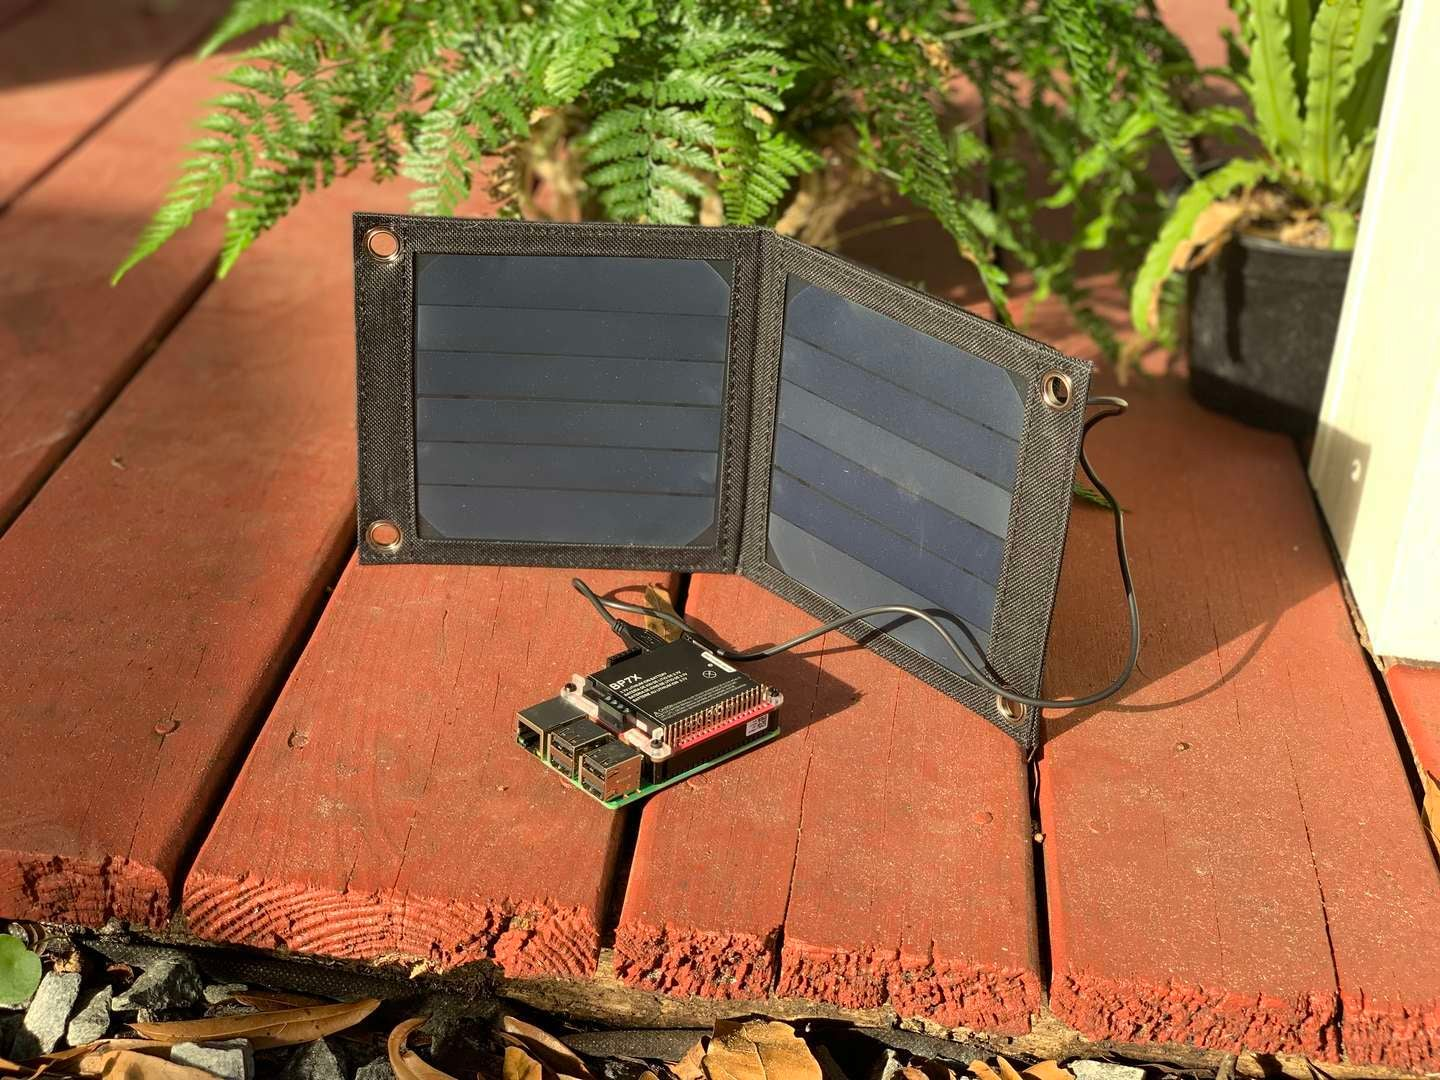 Solar-powered Pi